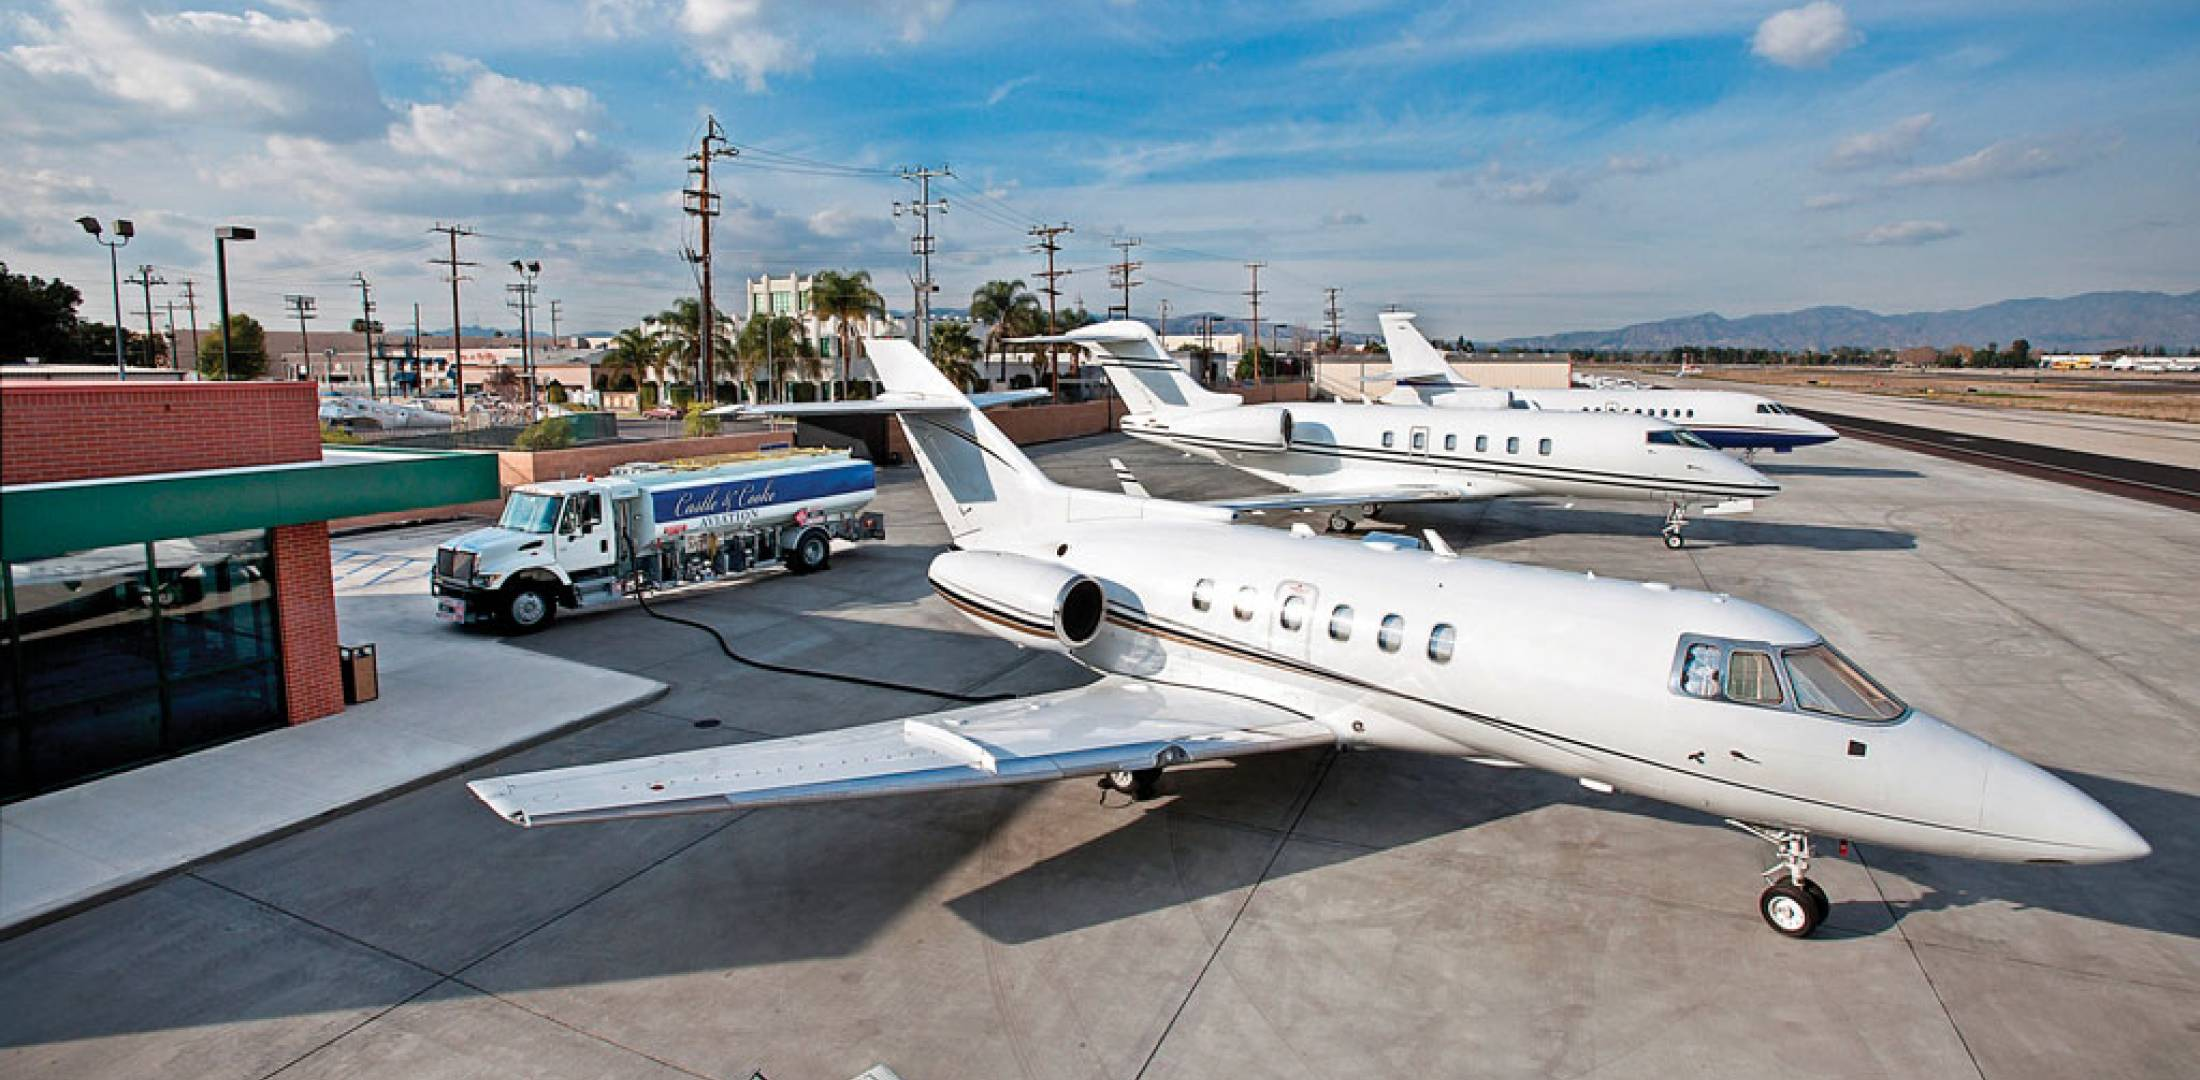 The new ramp at Castle & Cooke's Van Nuys, California FBO will be even busier once Customs service returns to the airport, expected by midyear.